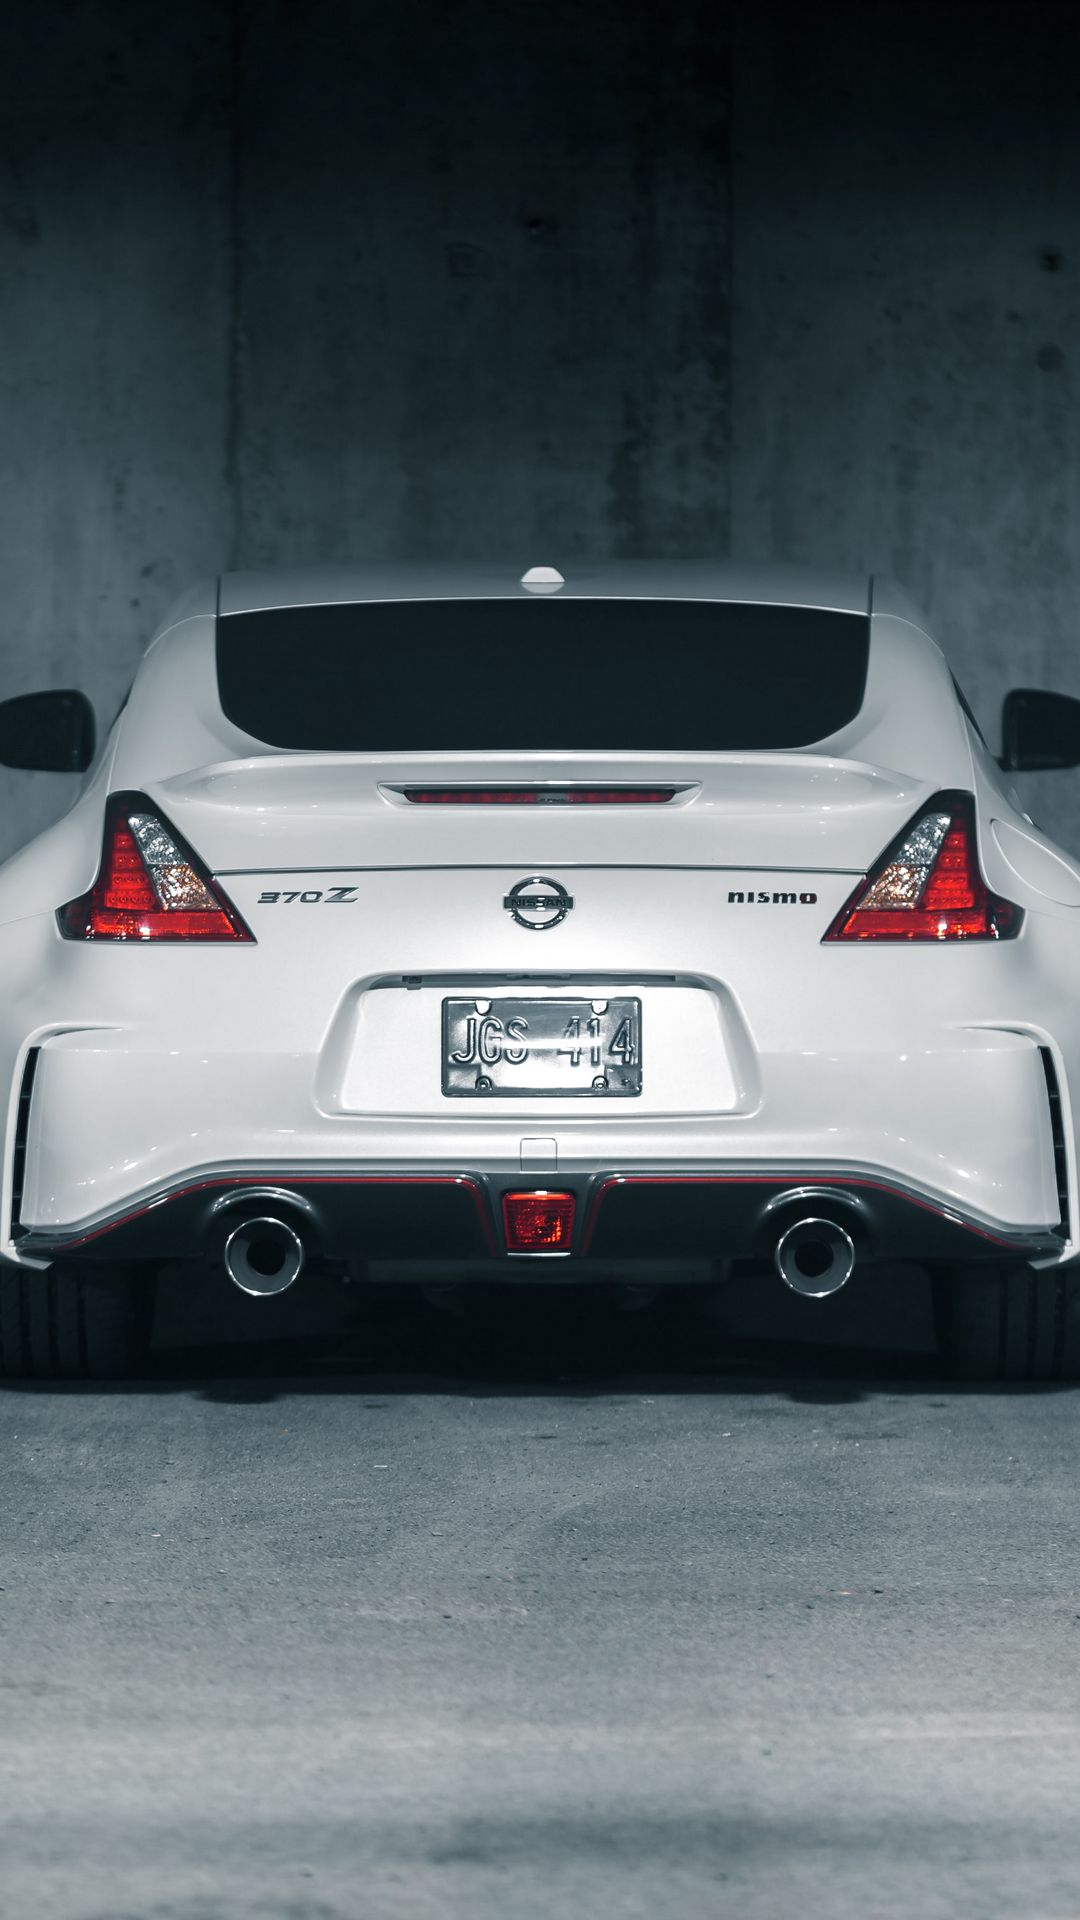 Nissan Tunning Car Wallpapers Free Download